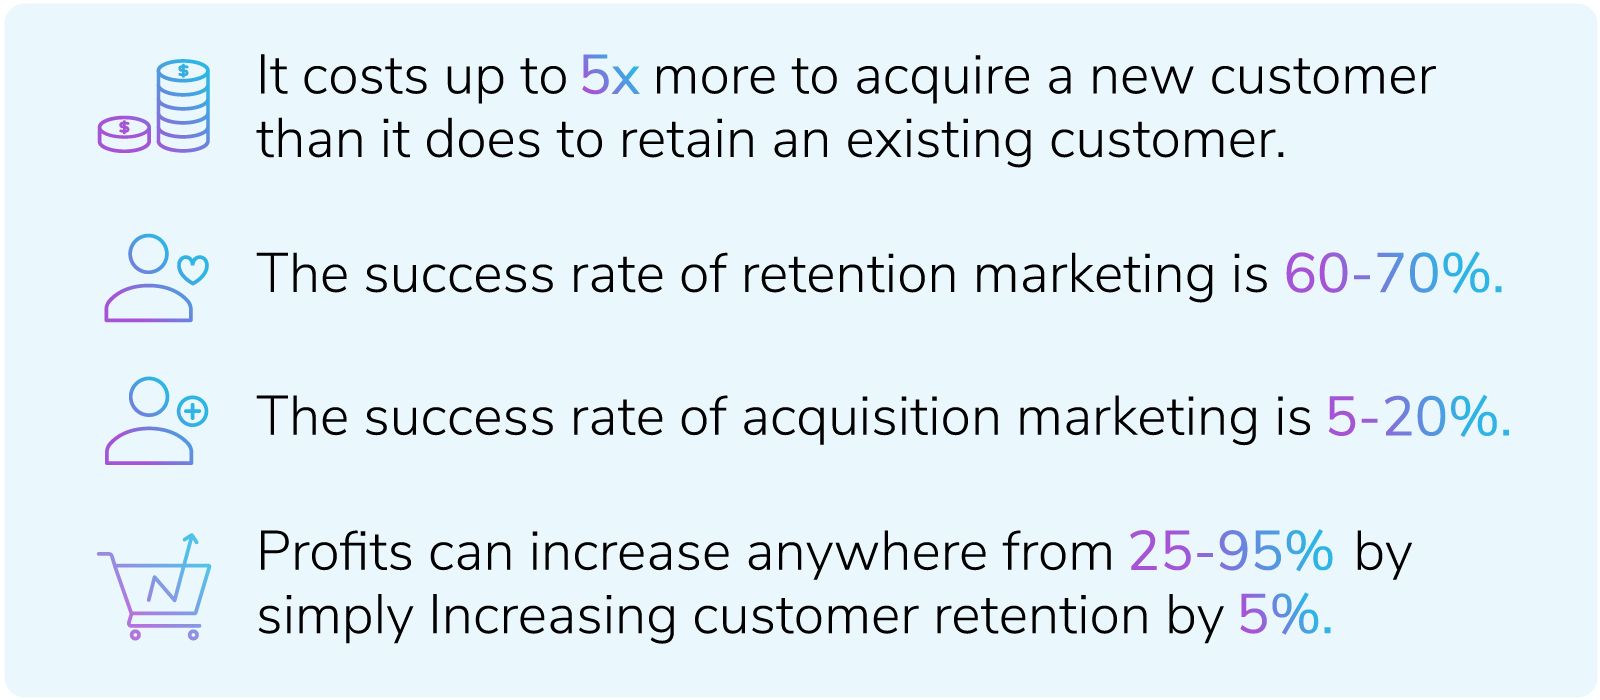 Infographic with stats about the success rates of retention marketing and acquisition marketing.